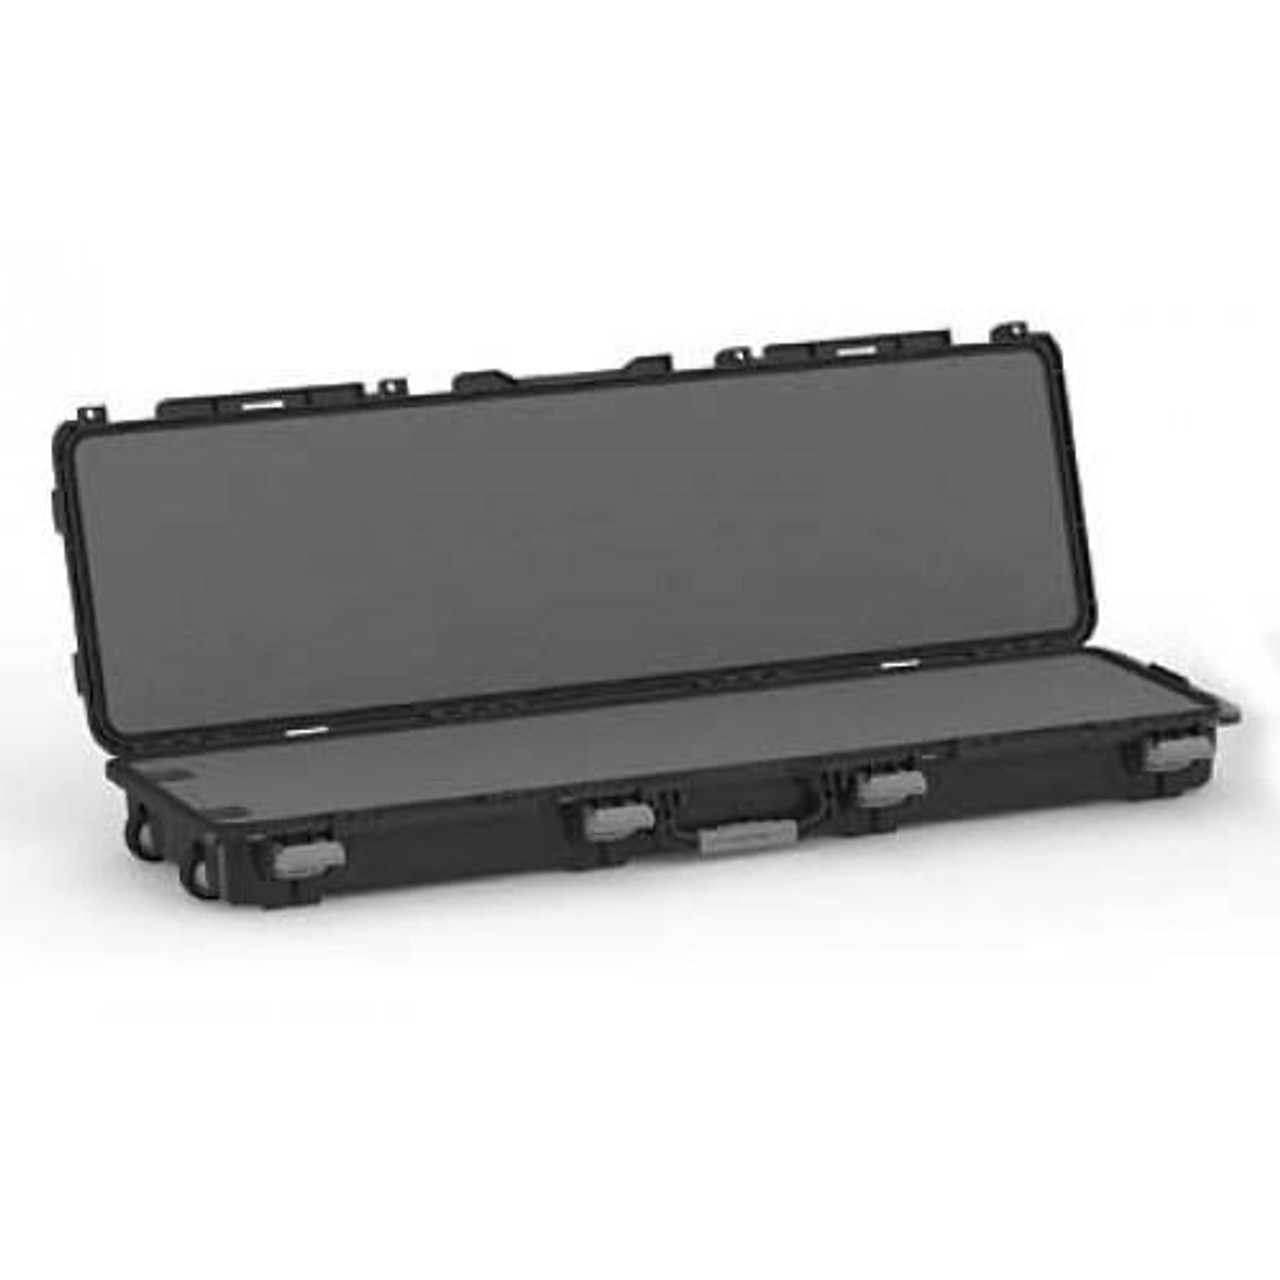 Plano Field Locker Tactical Mil-Spec Long Rifle Case Double Gun Black 109540